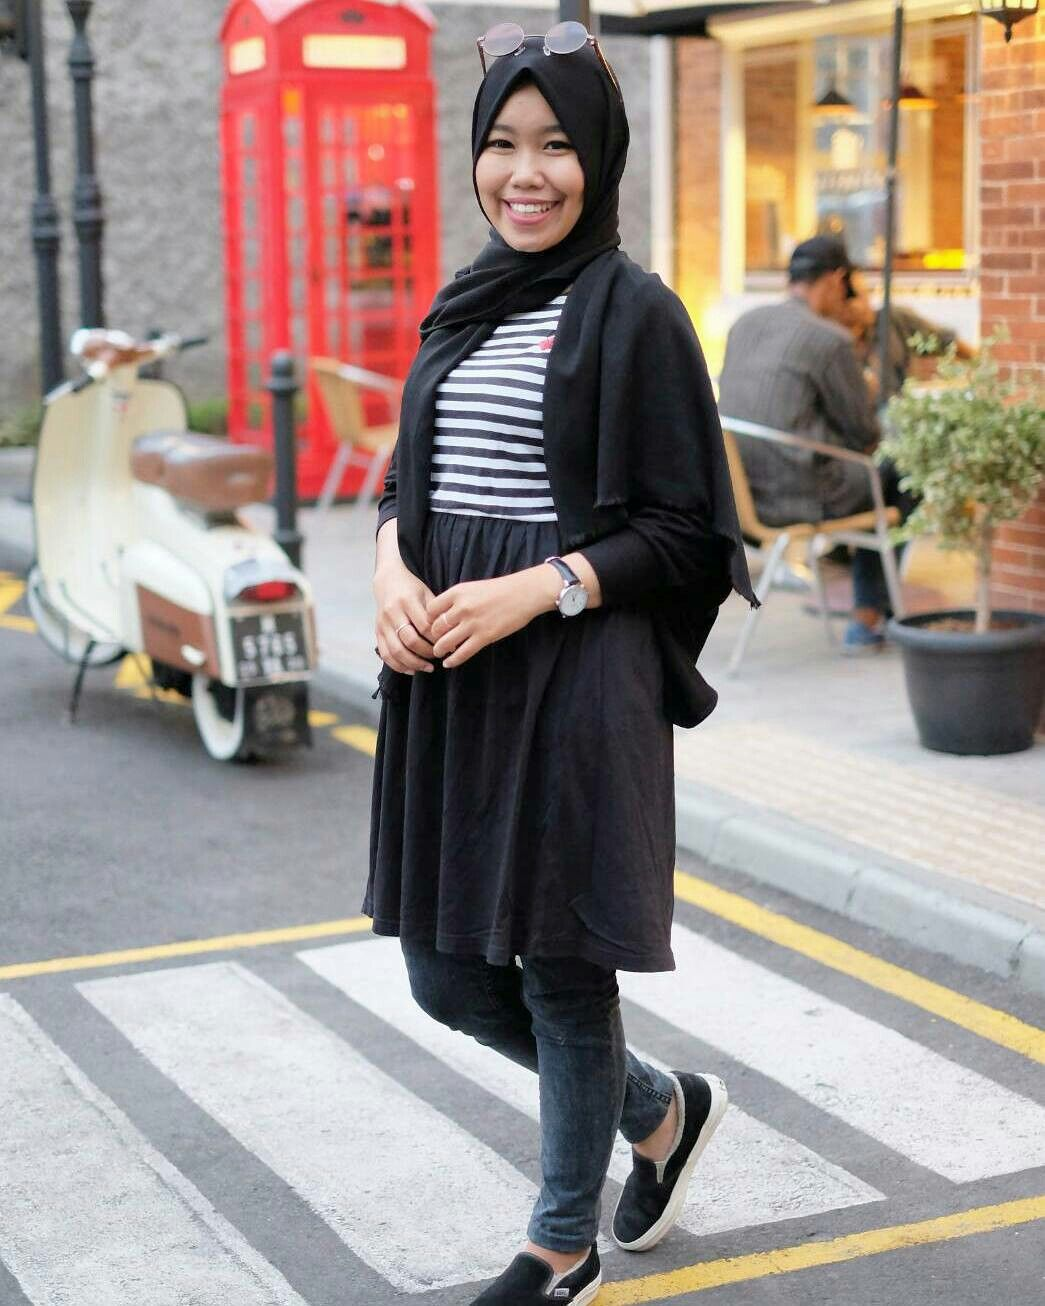 Hijab Black And White Casual Style Vans Slip On Black White